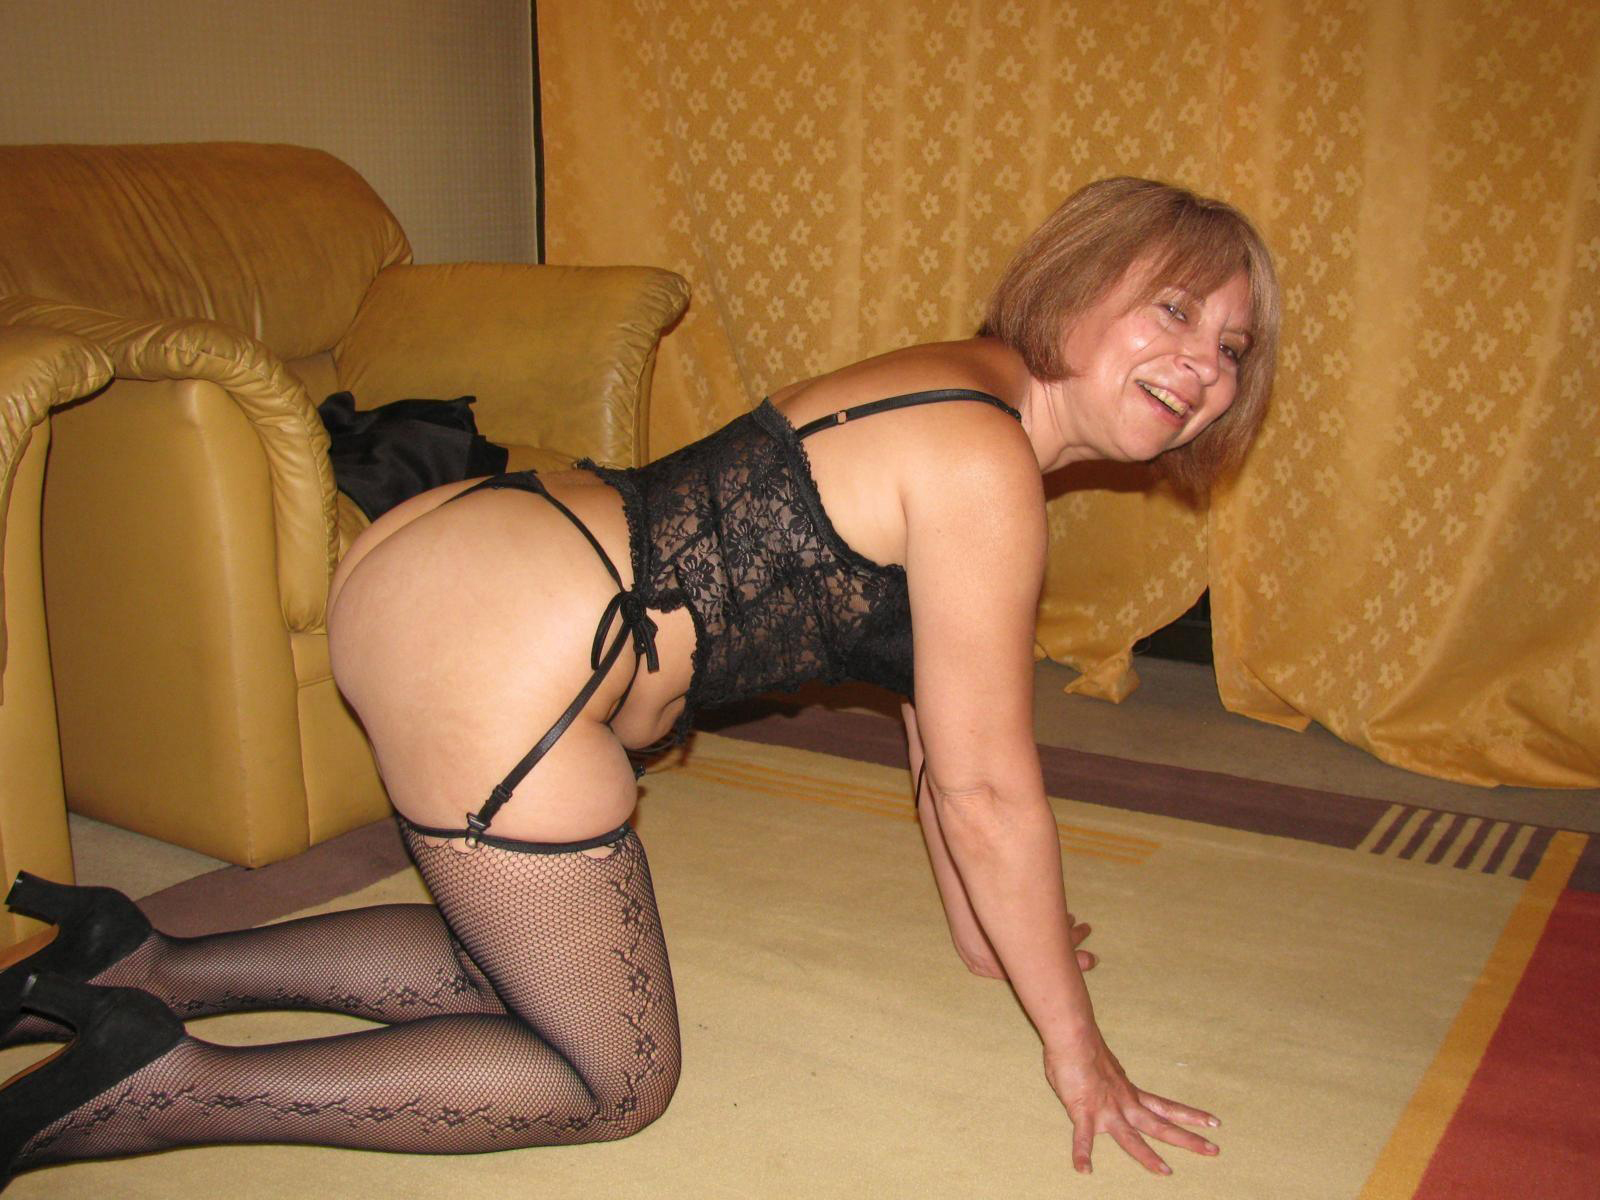 Mature Hot Women Tumblr